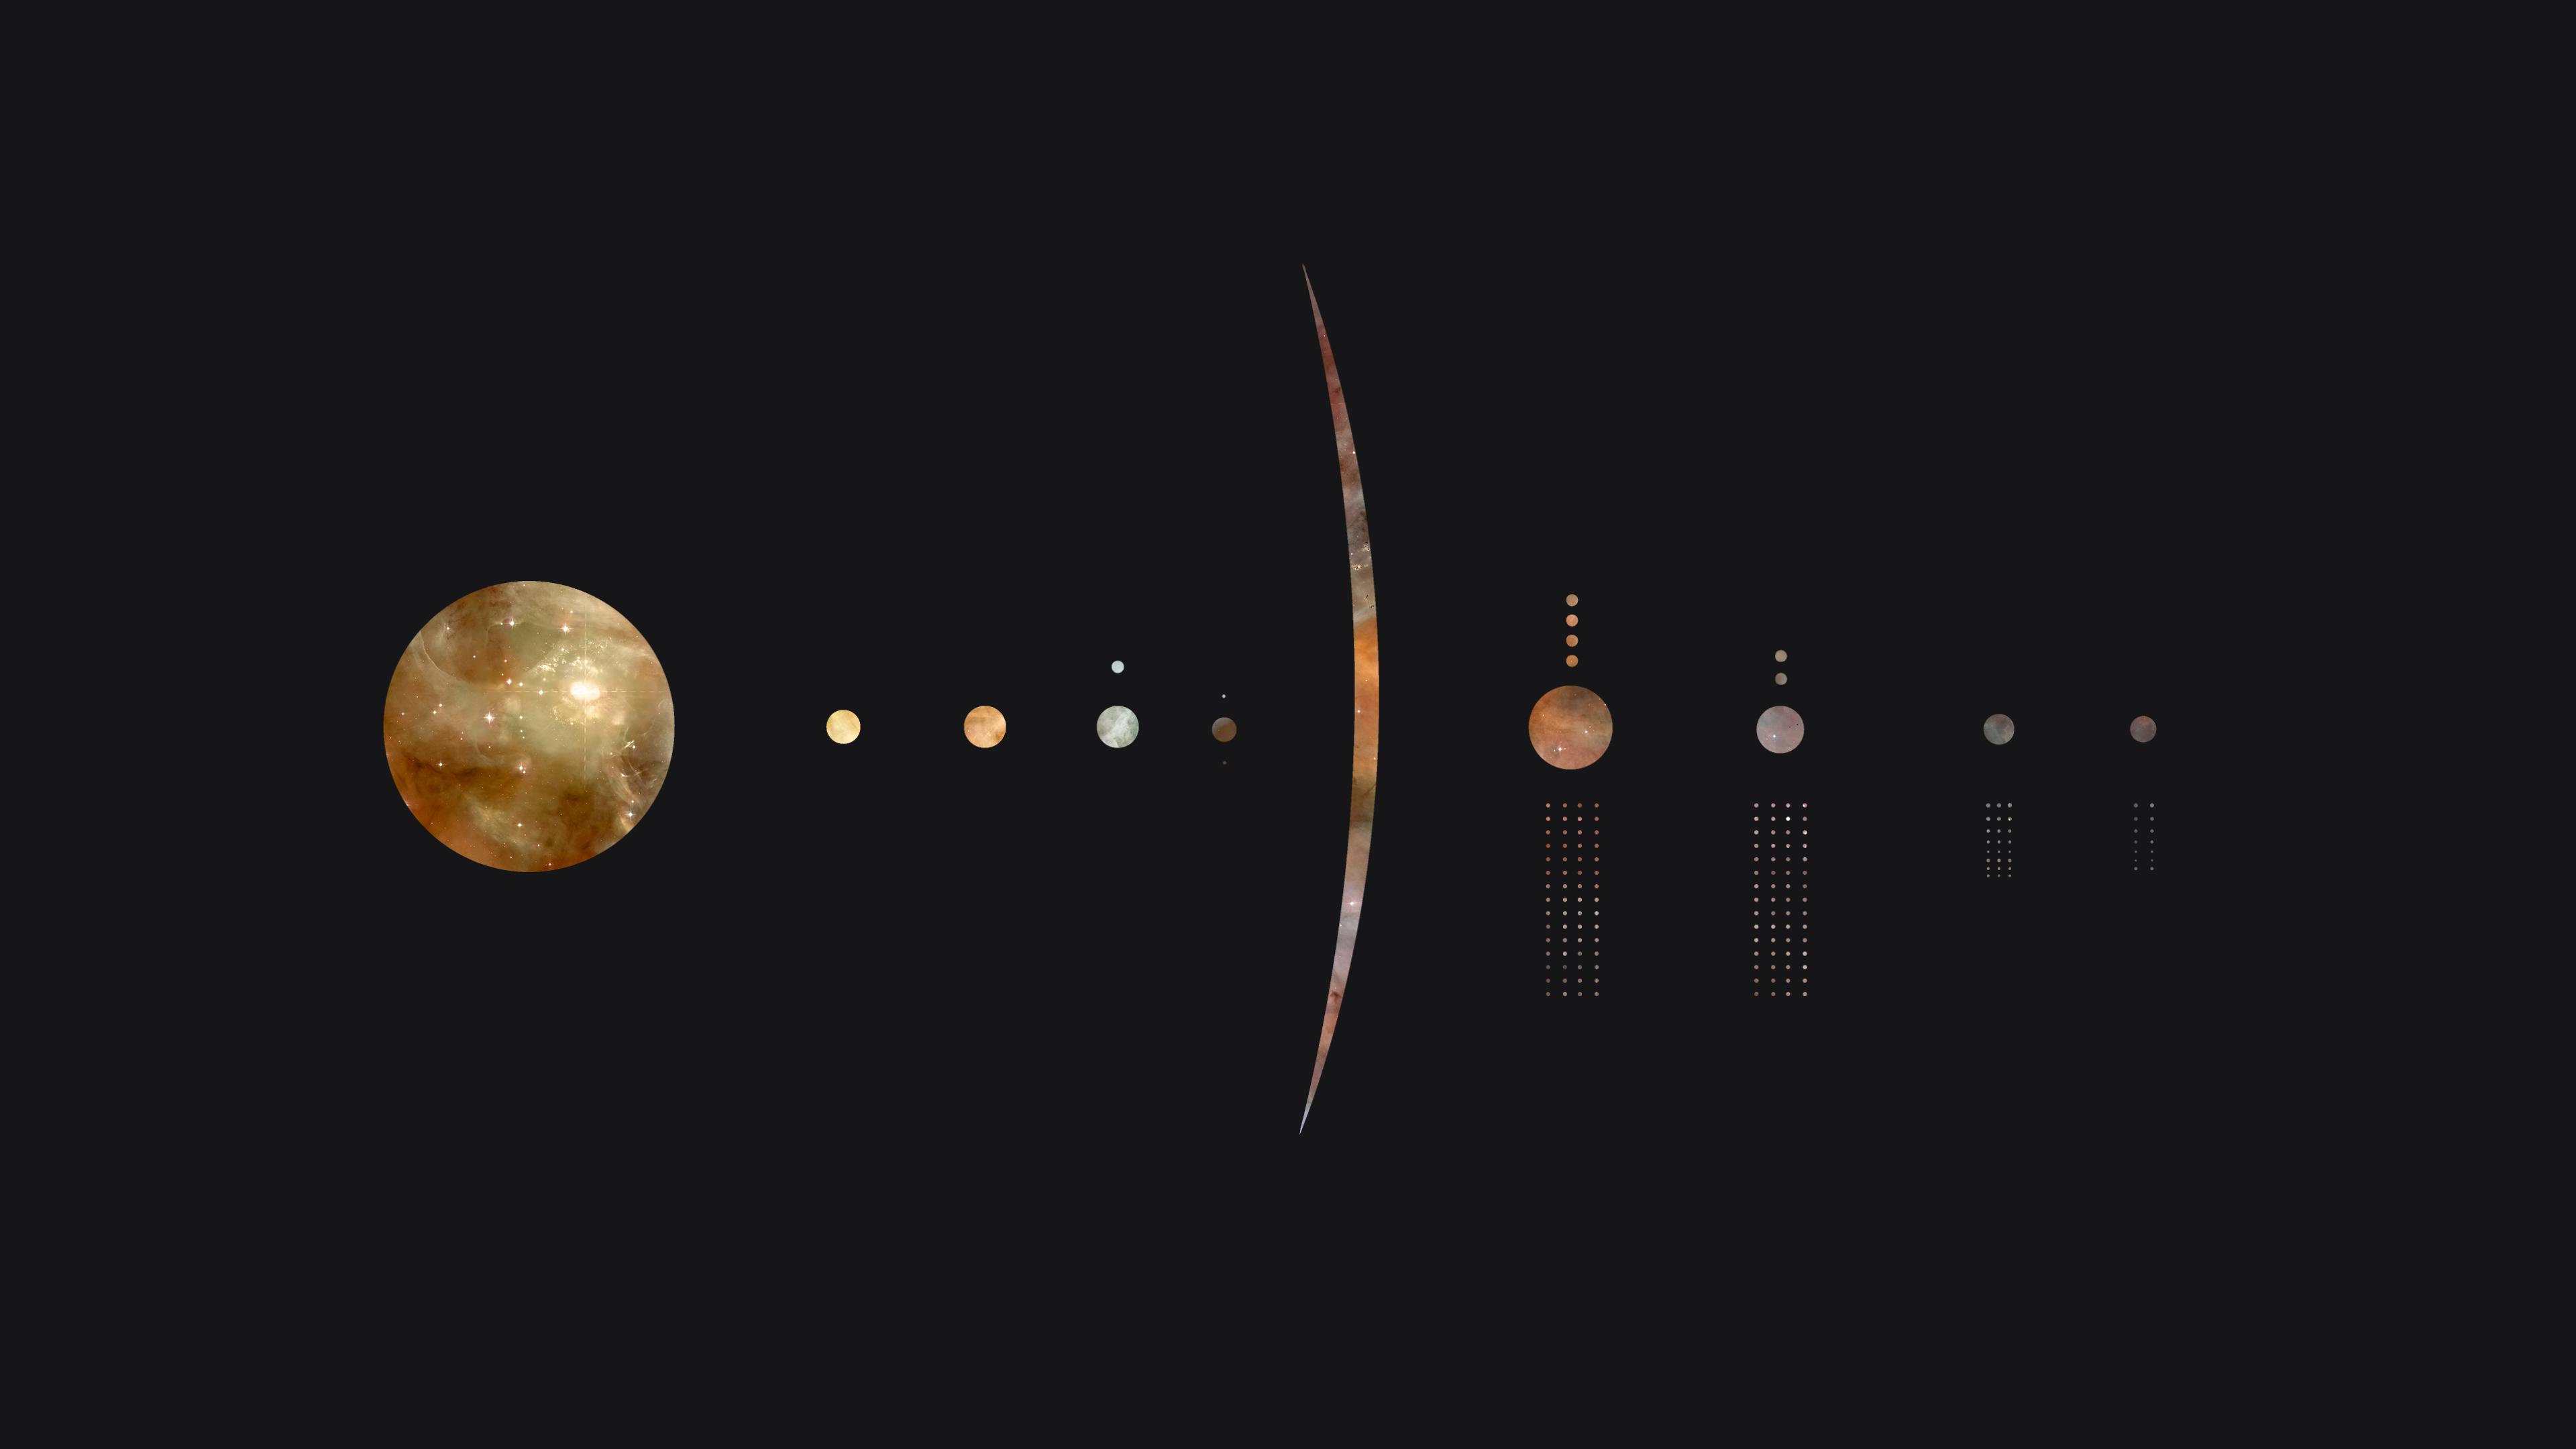 Minimalistic Solar System 3840x2160 Wallpapers In 2019